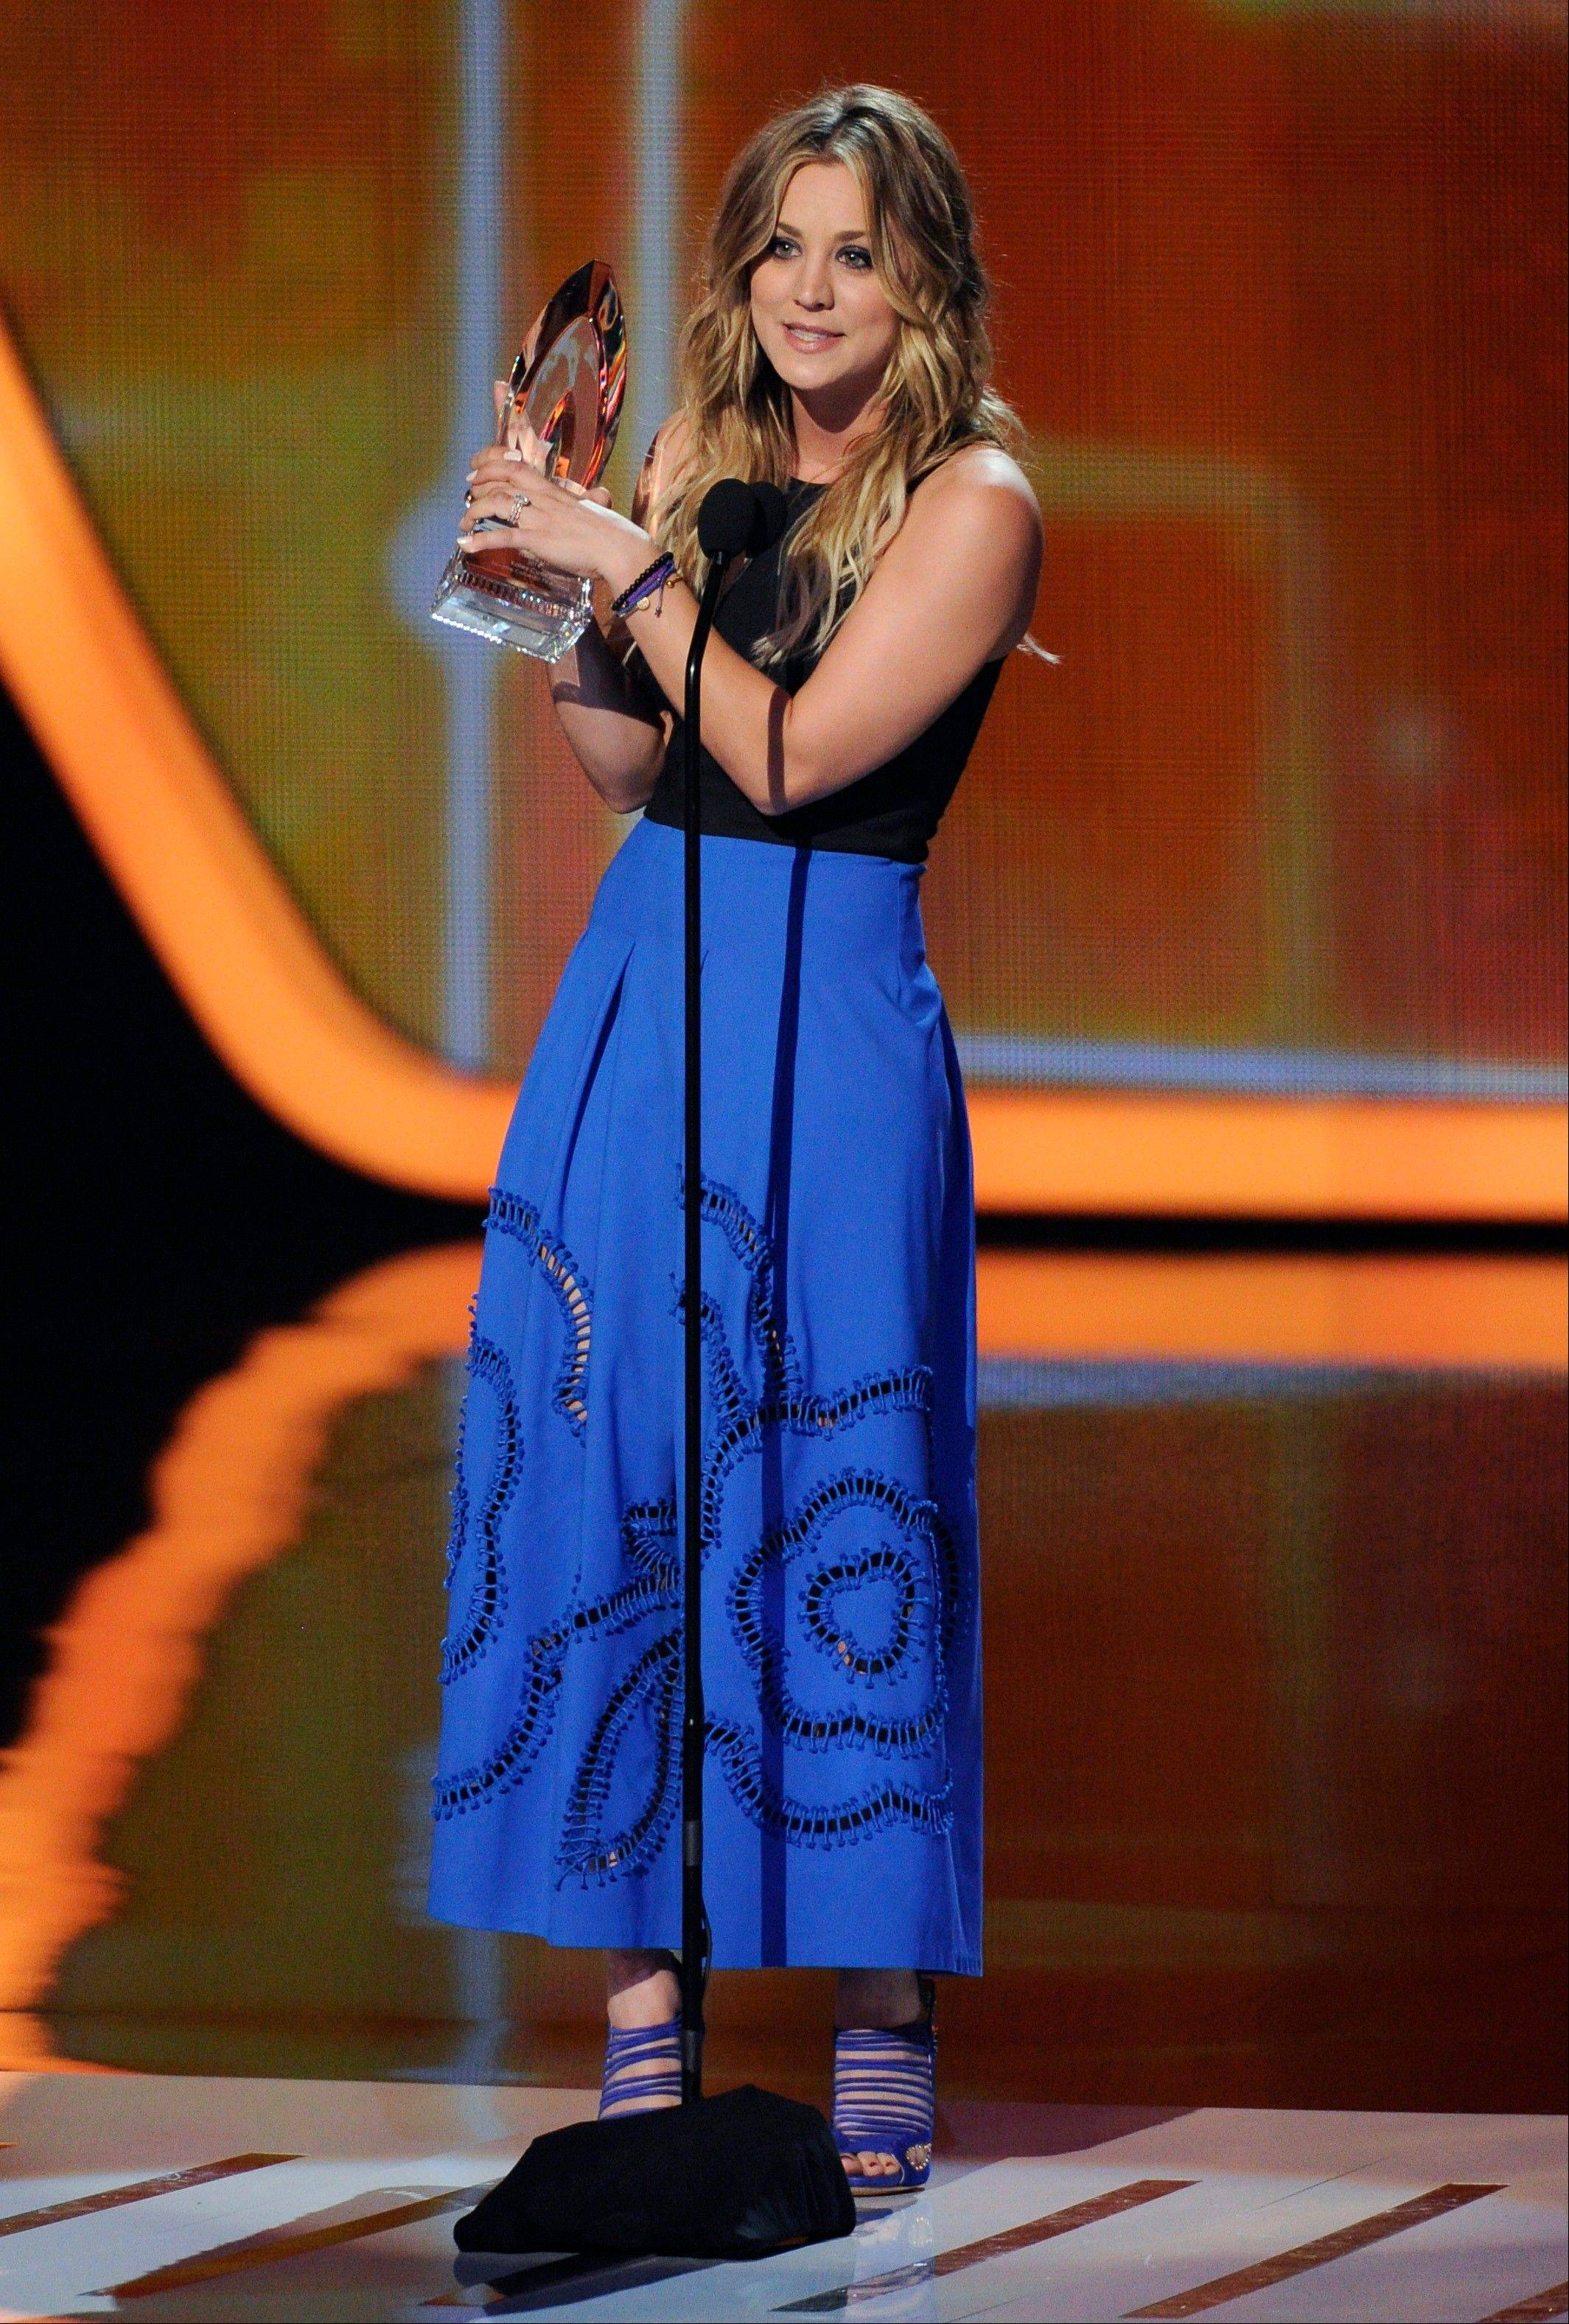 Associated PressKaley Cuoco accepts the award for favorite comedic TV actress at the 40th annual People's Choice Awards at the Nokia Theatre L.A. Live on Wednesday, Jan. 8, 2014, in Los Angeles.